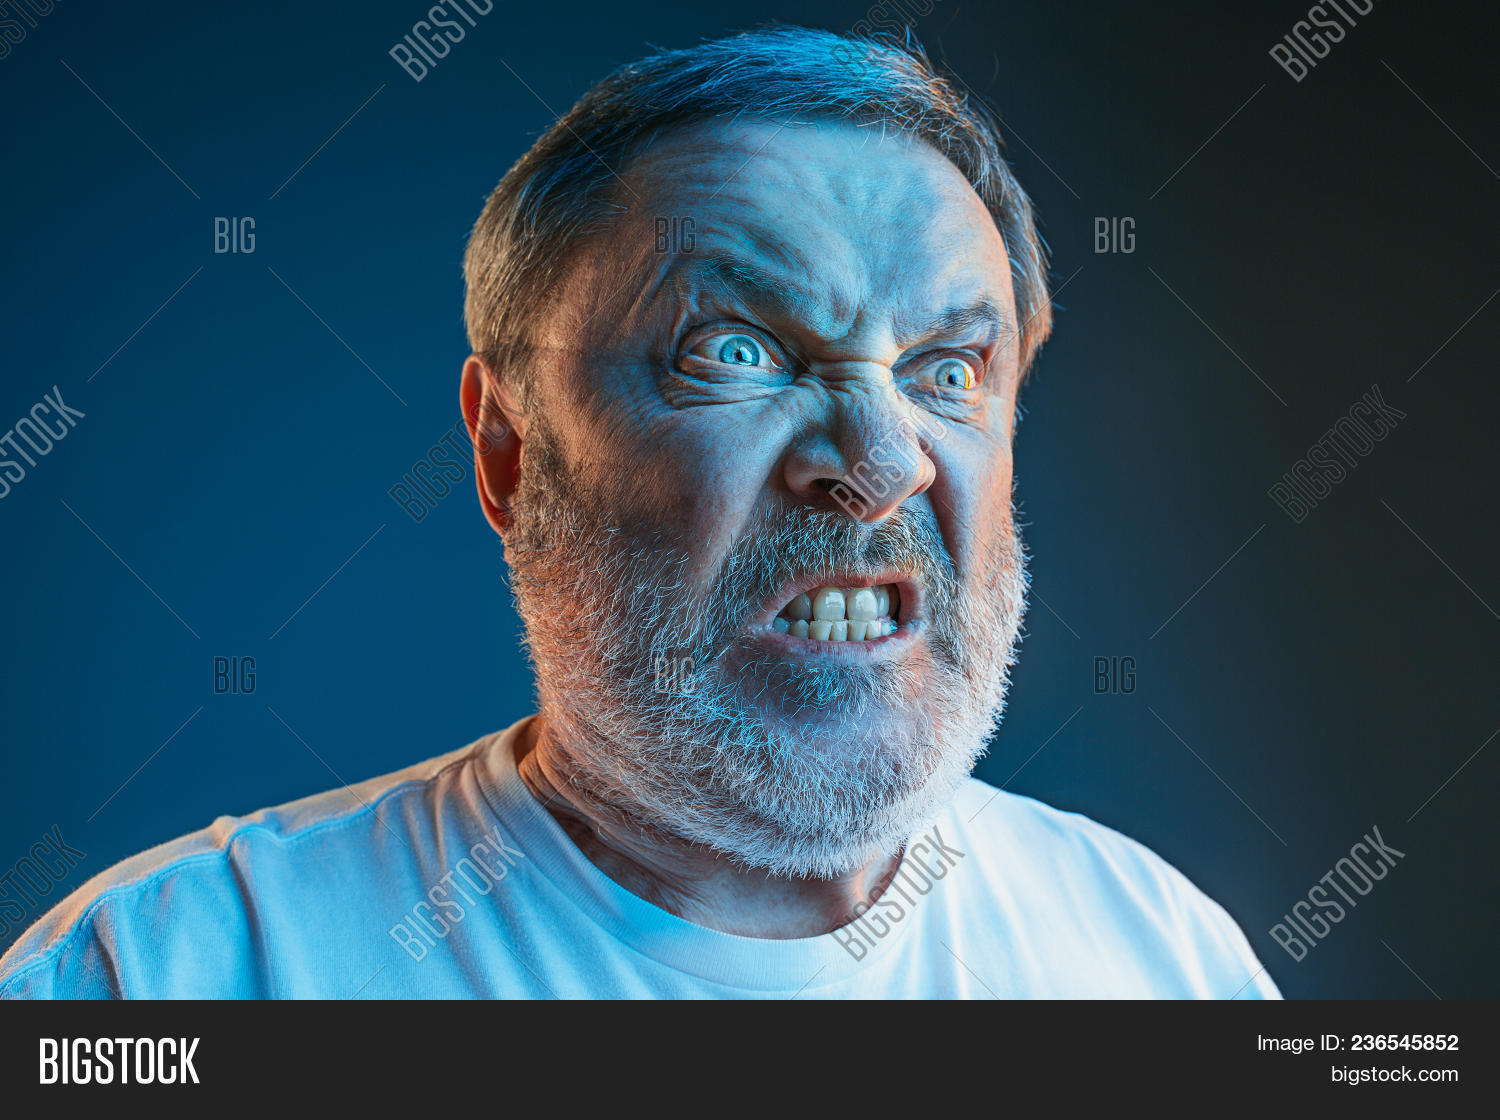 Human,aggression,aggressive,anger,angry,argue,arguing,argument,attractive,blue,bright,businessman,caucasian,colorful,concept,conflict,crasy,cry,crying,disagreement,divorce,emotion,emotional,expression,face,facial,fight,gesture,hate,hatred,lights,male,man,mature,old,people,problem,quarrel,rage,scream,screaming,senior,shout,shouting,squall,stress,studio,tv,unhappy,yell